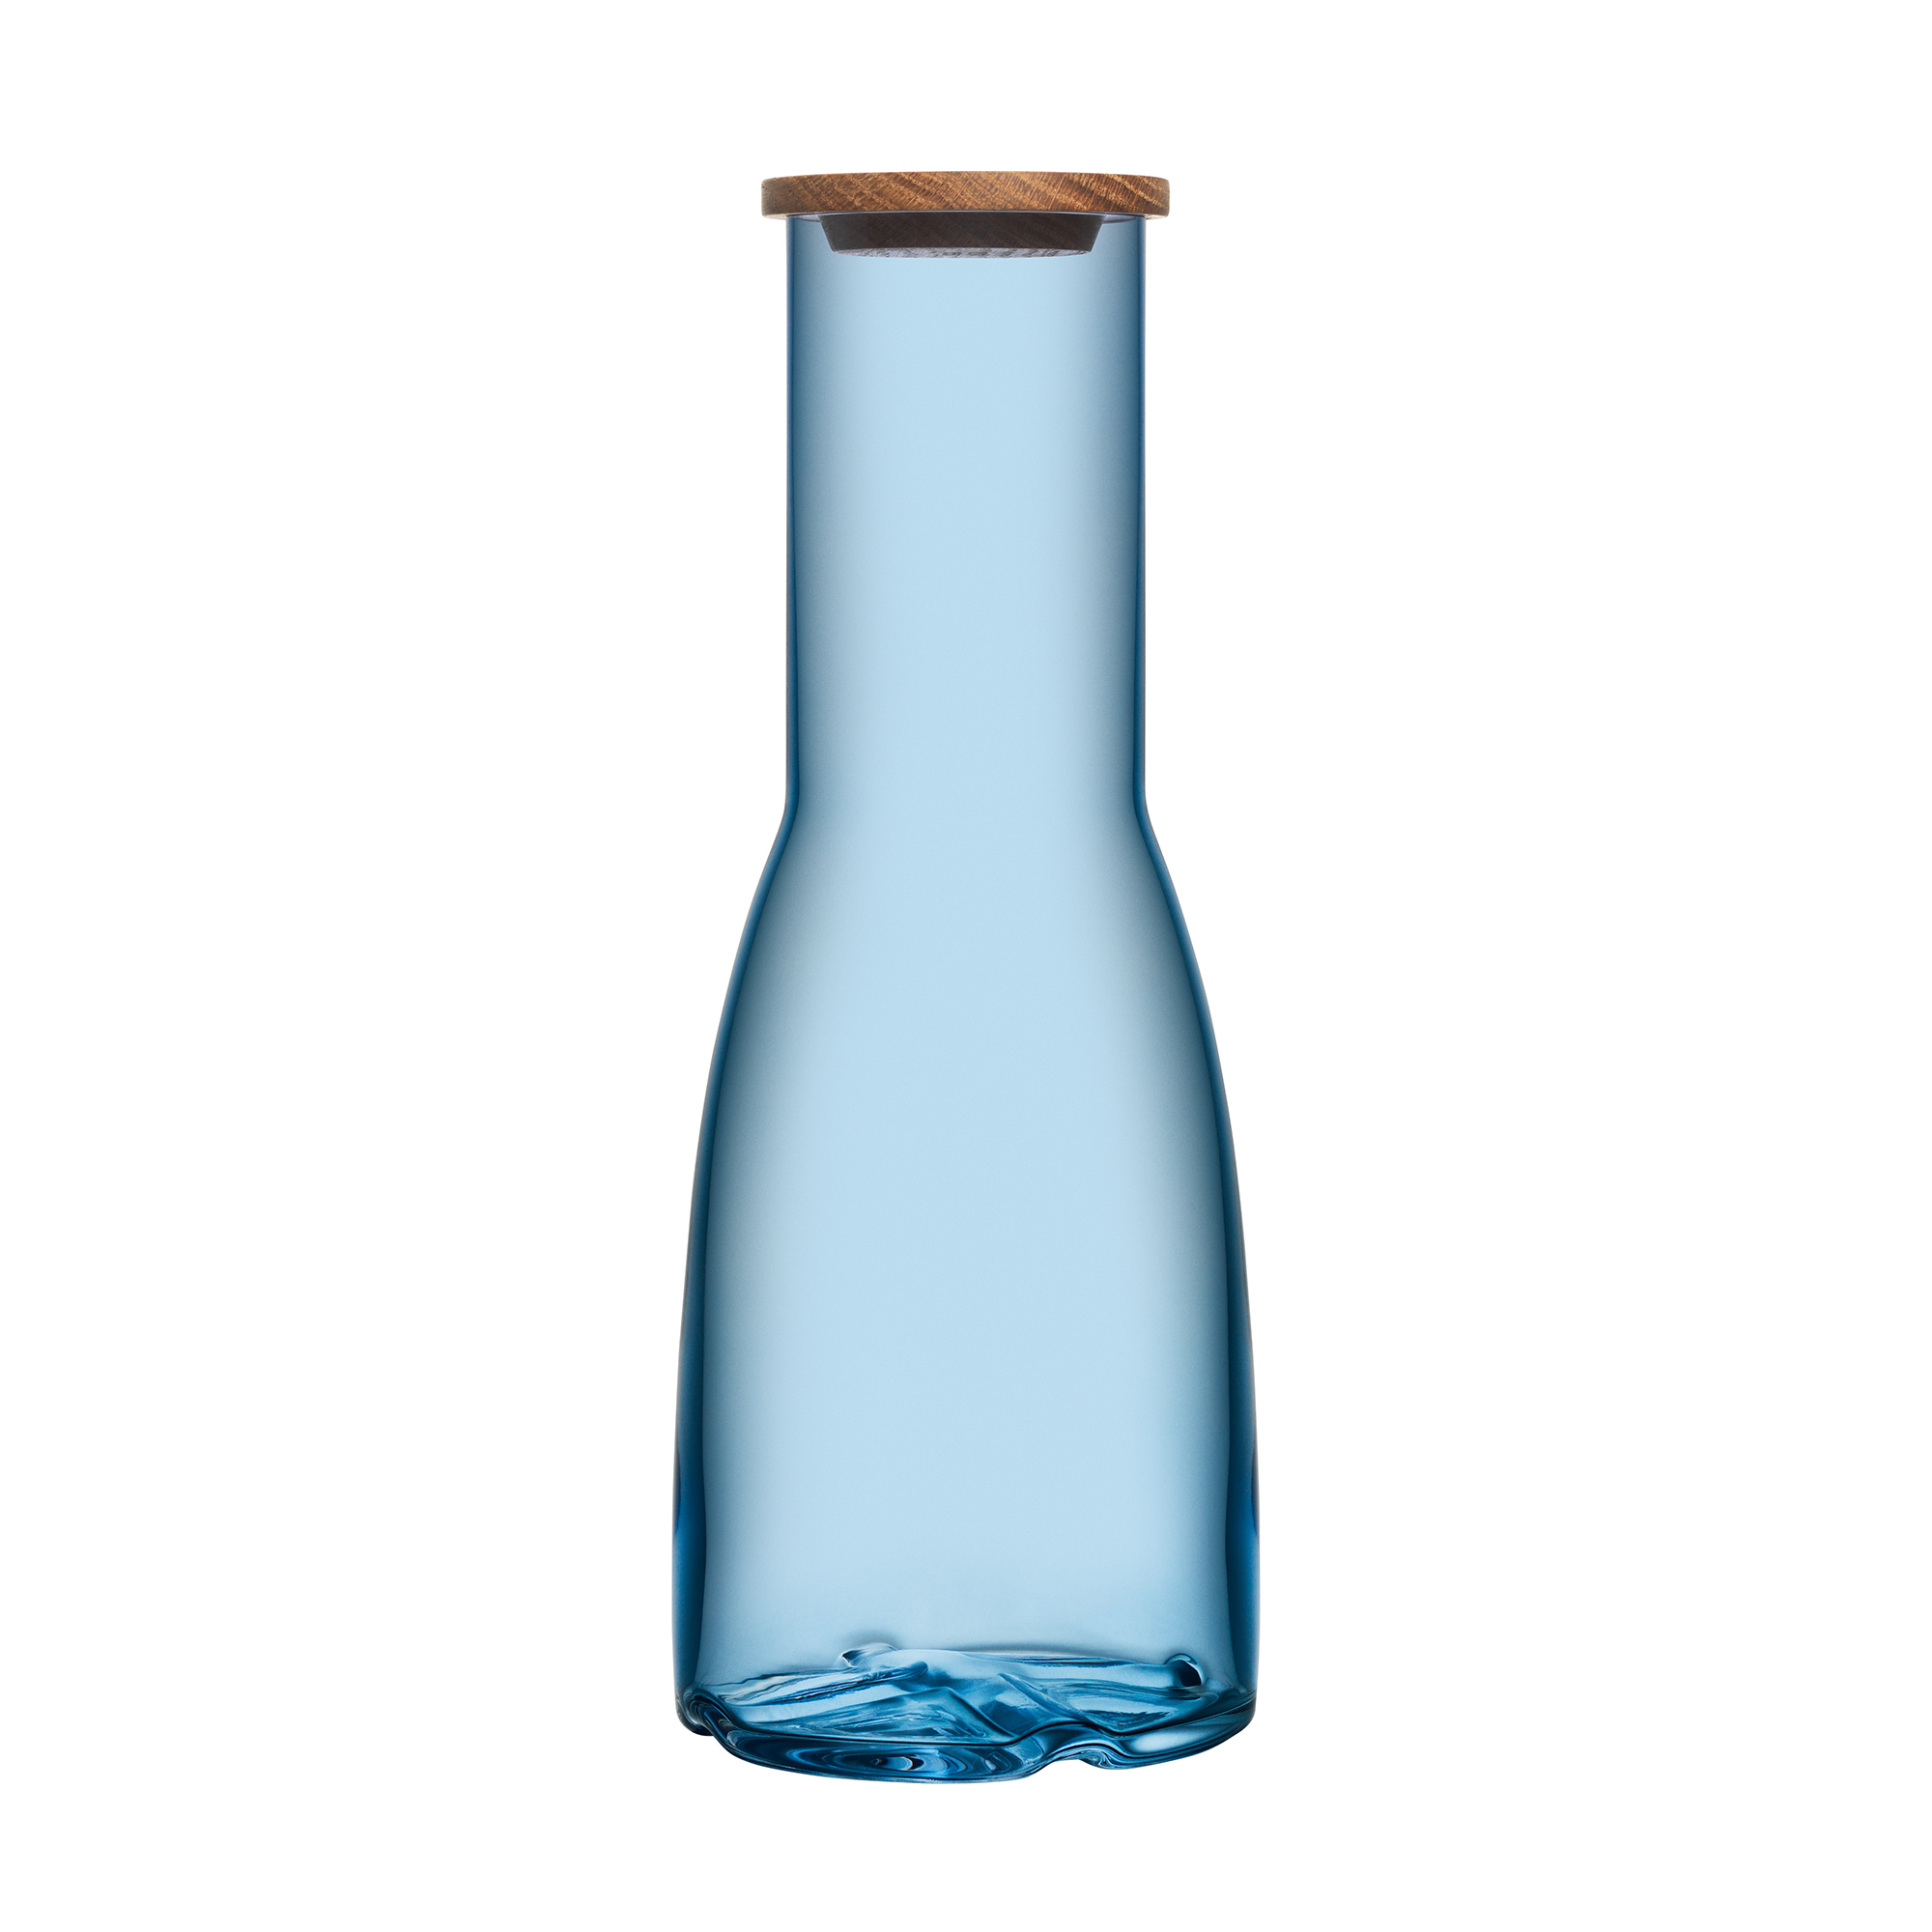 Kosta Boda Bruk Carafe with Oak Lid, Waterblue